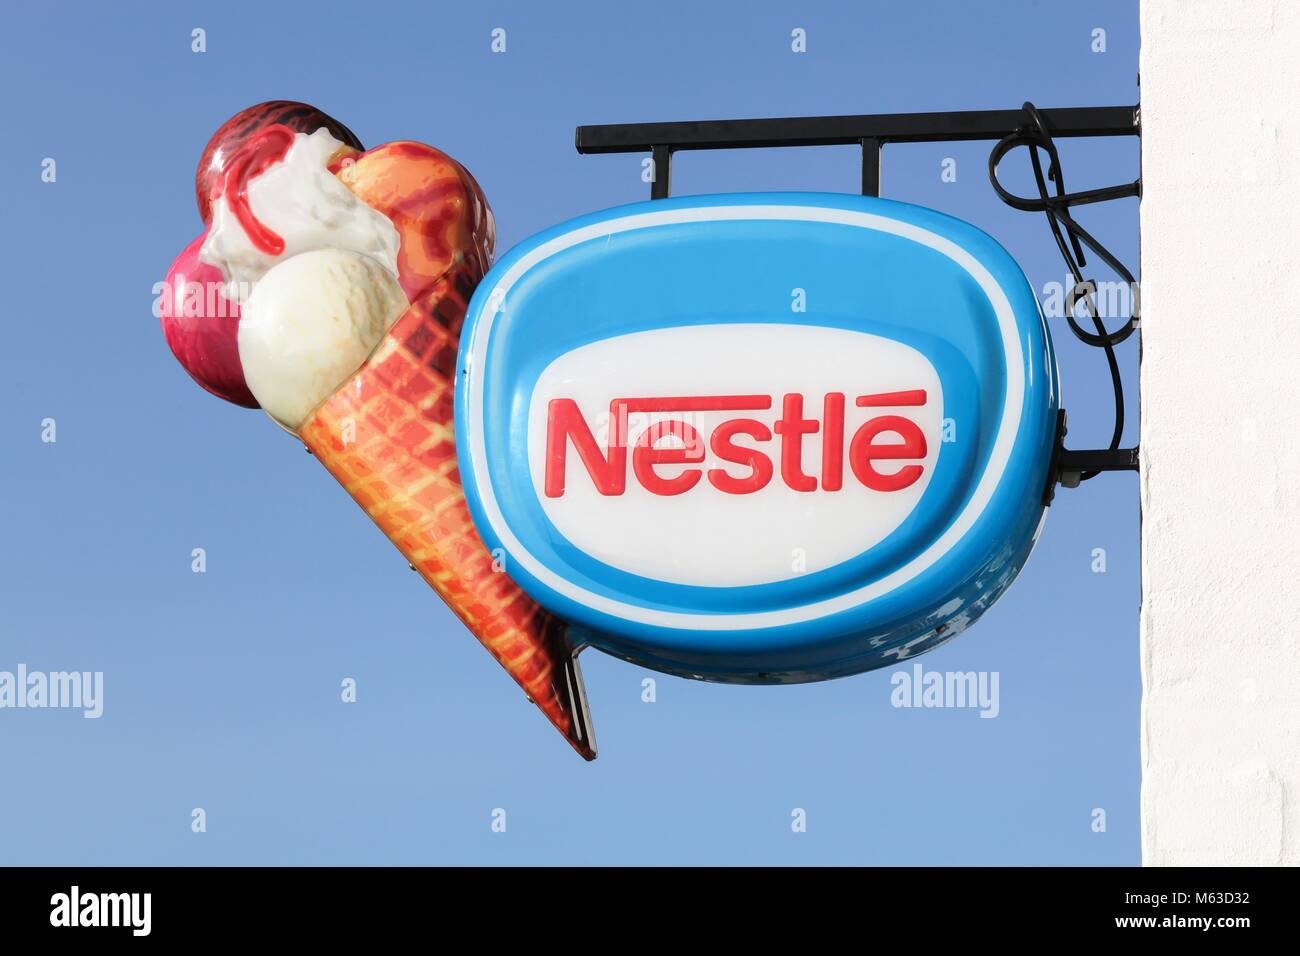 Logstor, Denmark - August 23, 2017: Nestle ice cream. Nestle is a Swiss transnational food and drink company headquartered - Stock Image